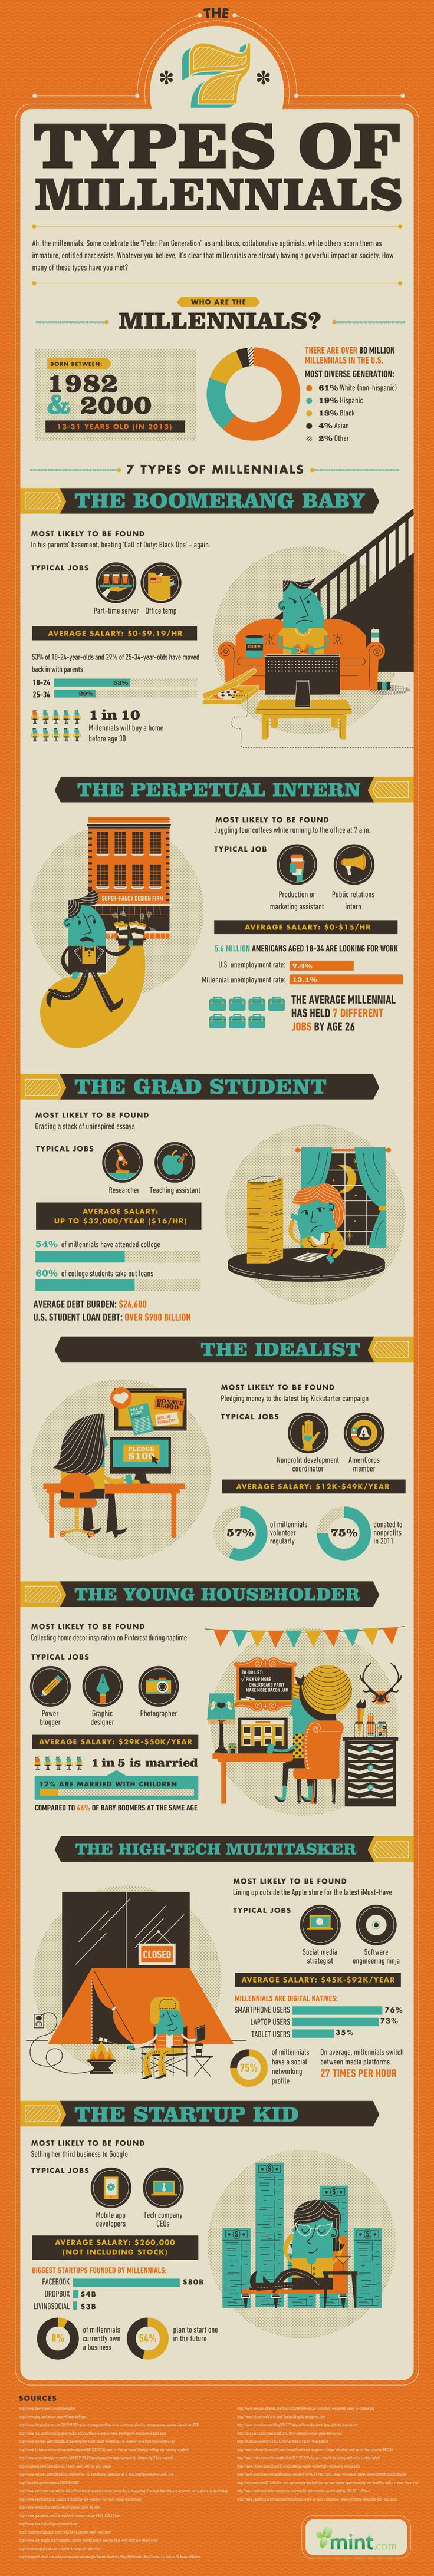 Infographic: The 7 Types Of Millennials Which One Are You?